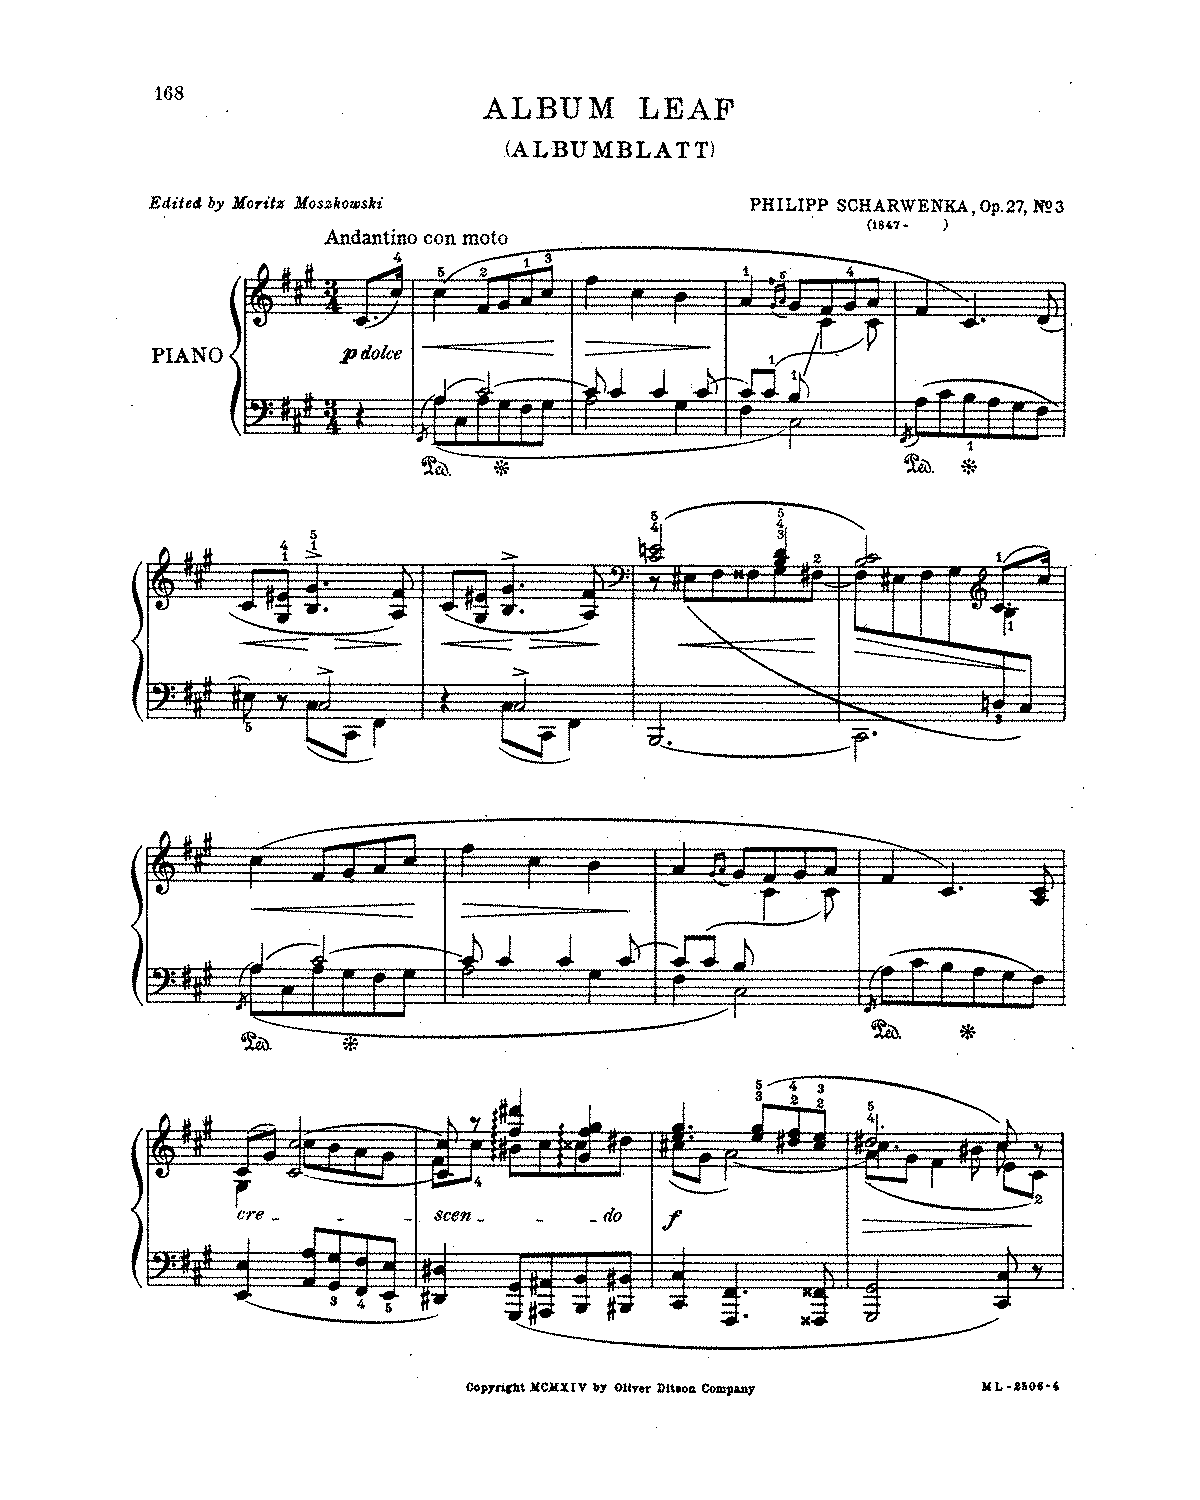 PMLP45296-Album Leaf, Op 27, No 3.pdf